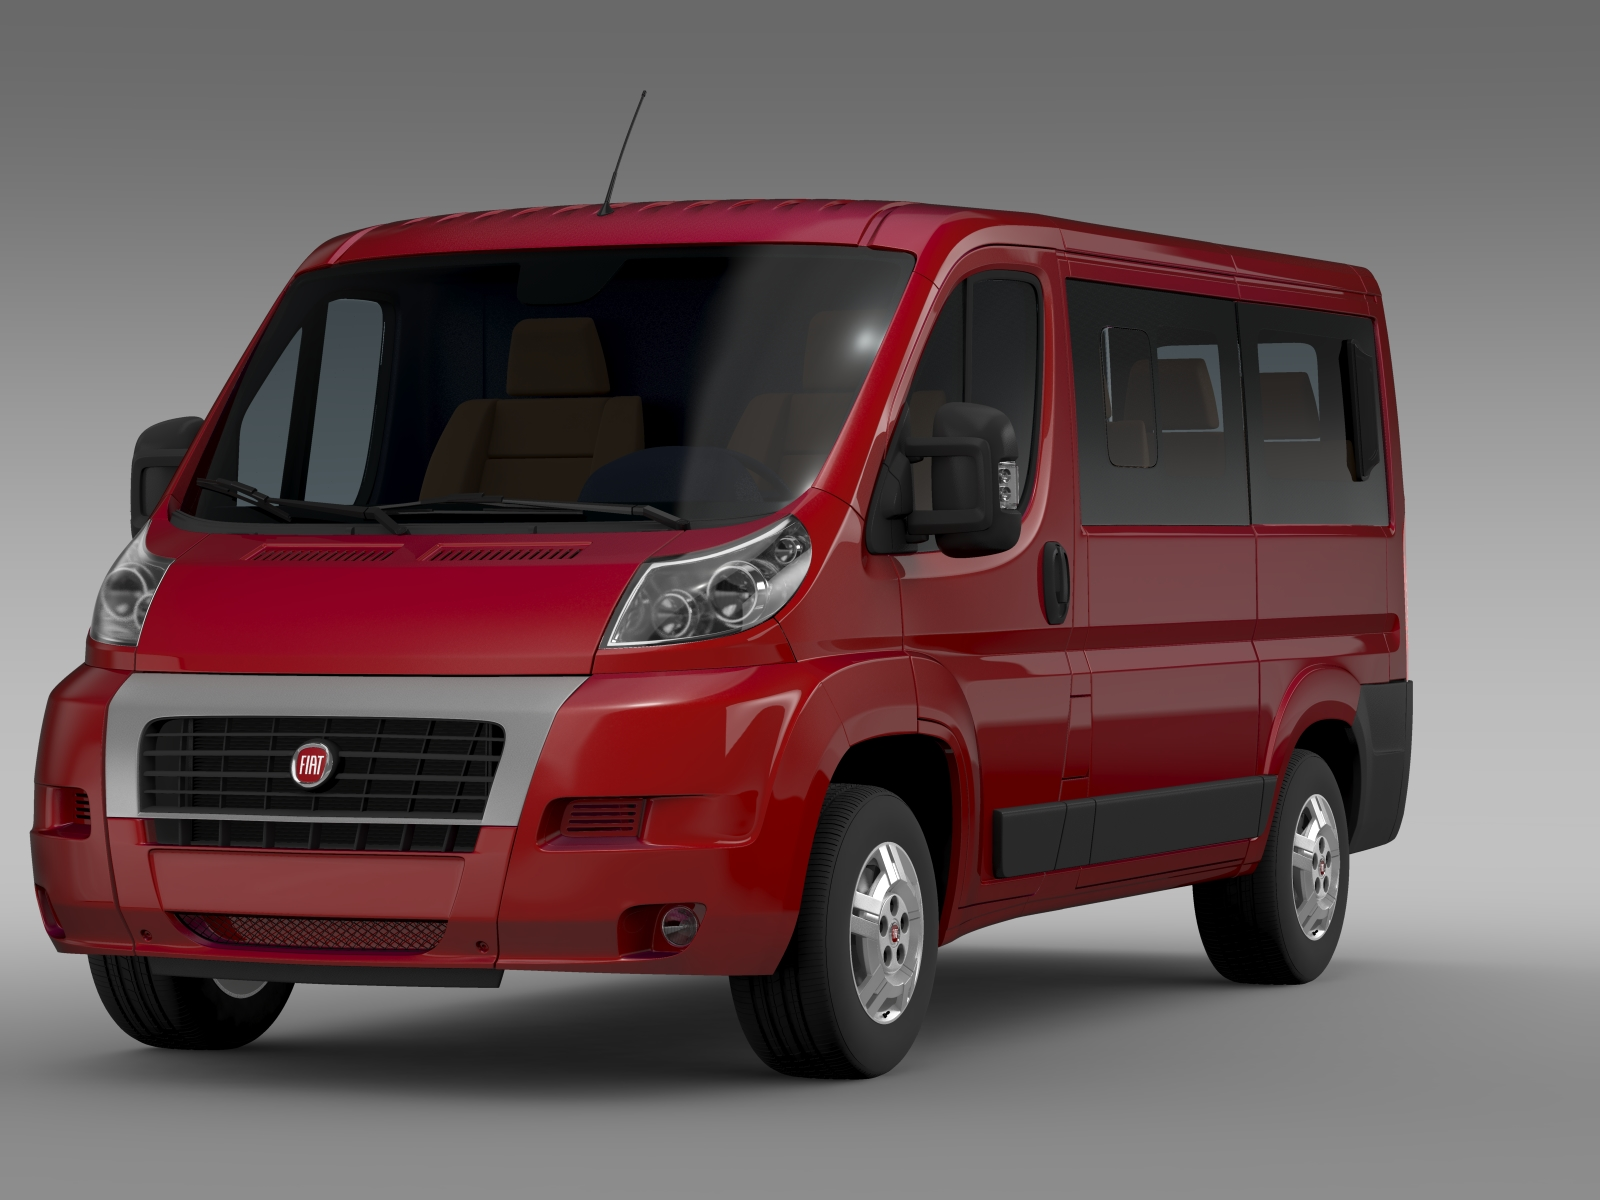 fiat ducato mini bus l1h1 2006 2014 3d model. Black Bedroom Furniture Sets. Home Design Ideas